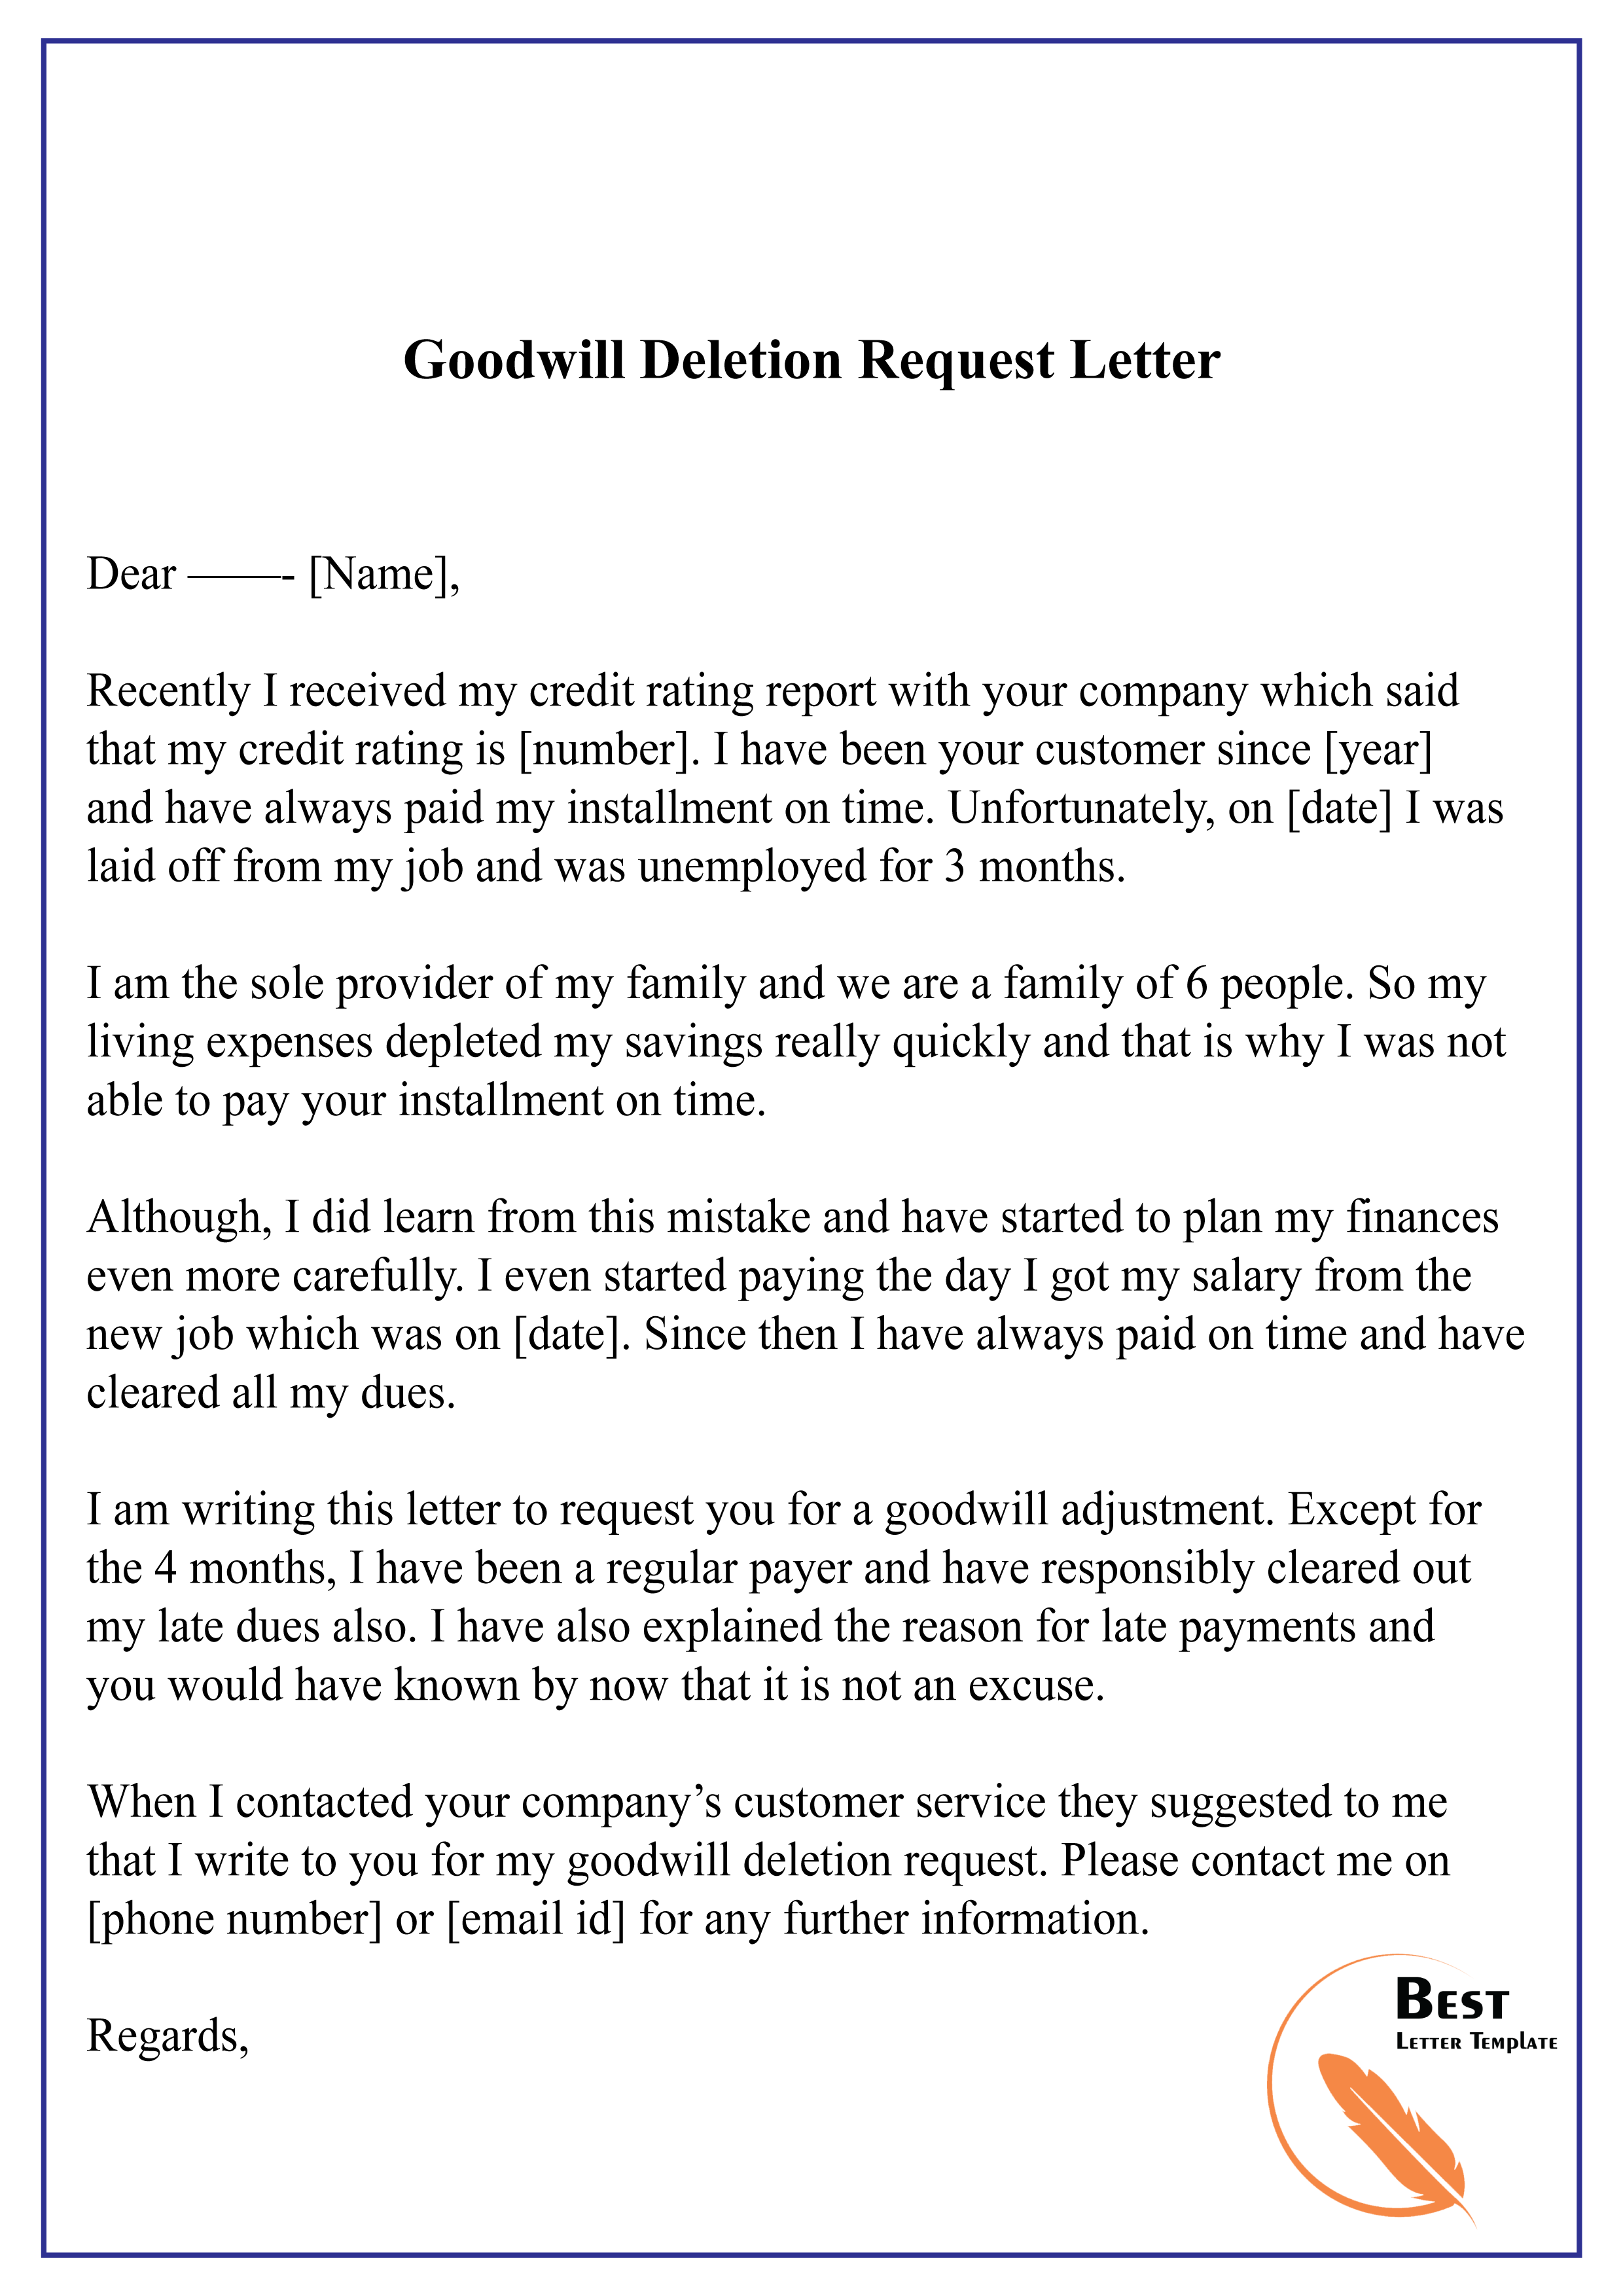 Request Day Off Letter from bestlettertemplate.com